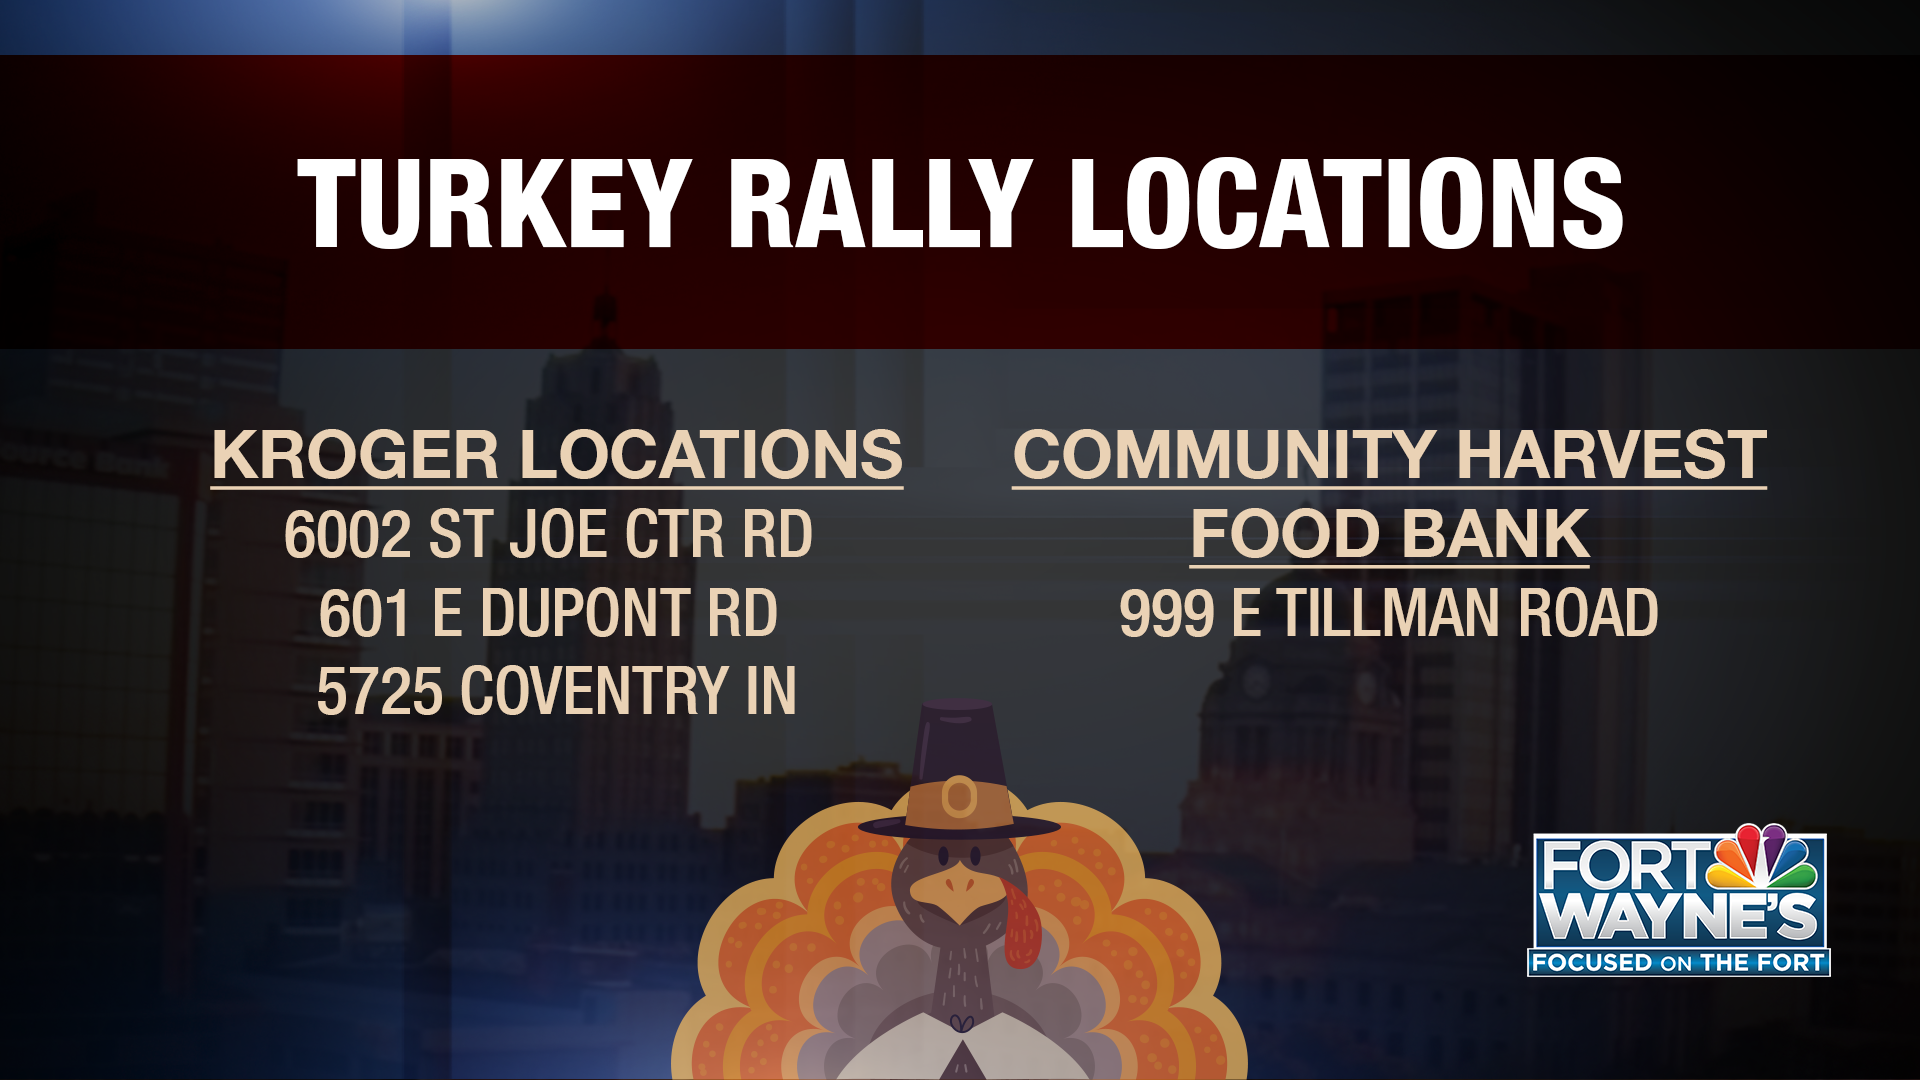 TURKEY RALLY: Here's how you can help families in need this Thanksgiving - FORT WAYNES NBC